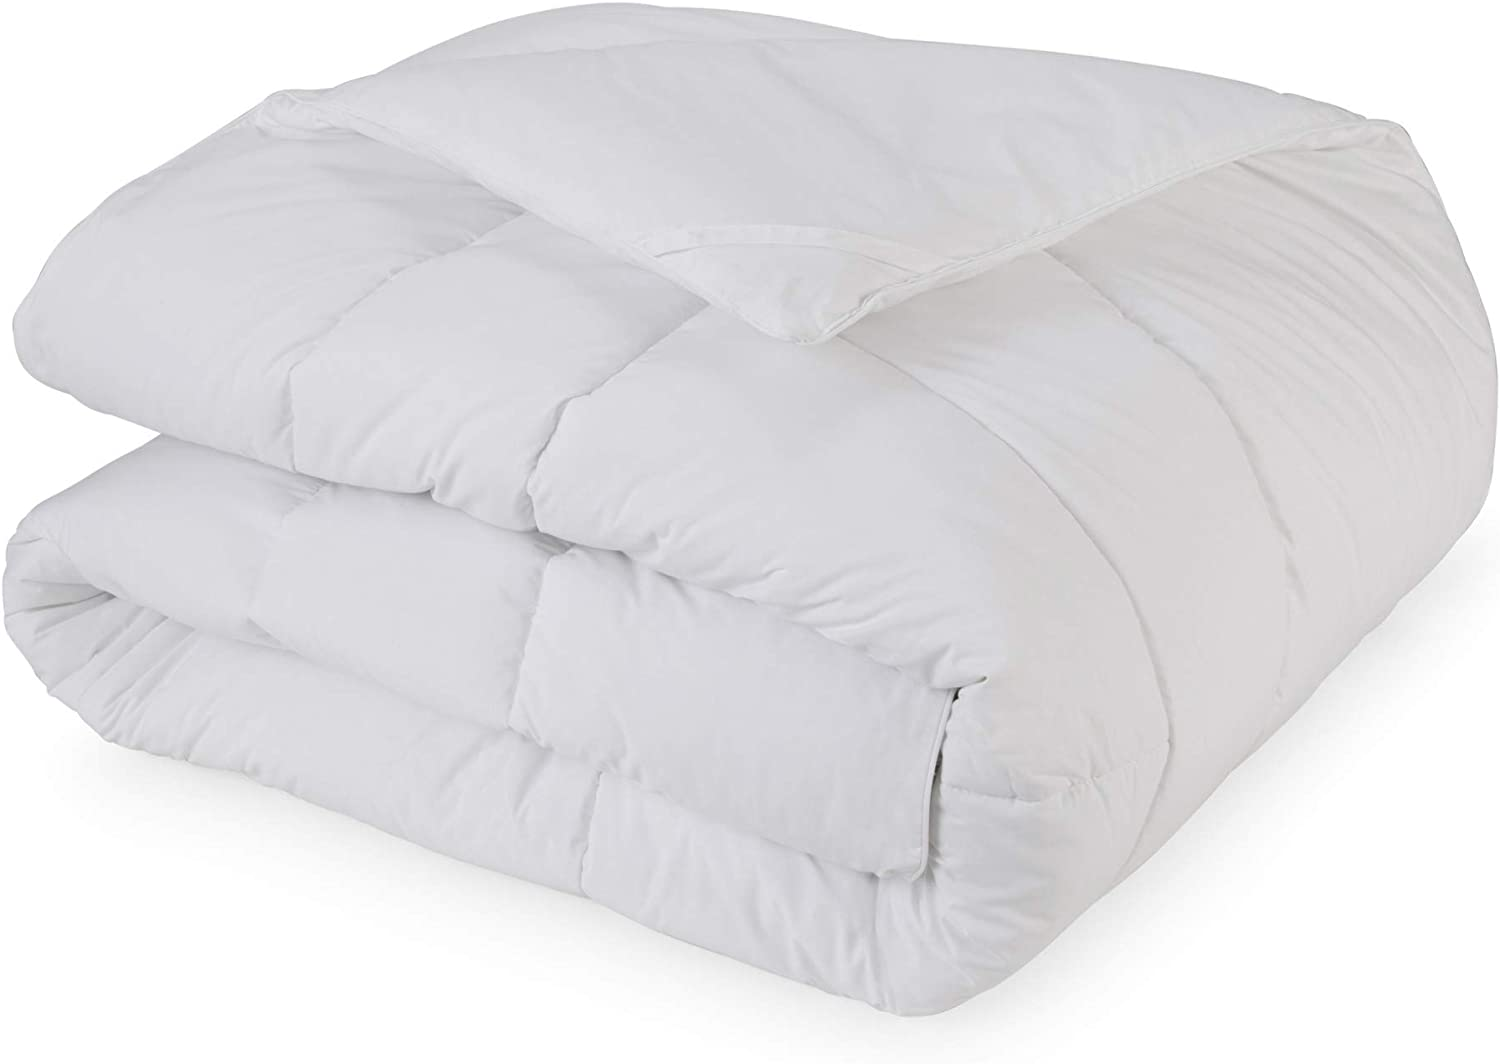 ECO PURE Pure and Simple Comforter, Twin, White